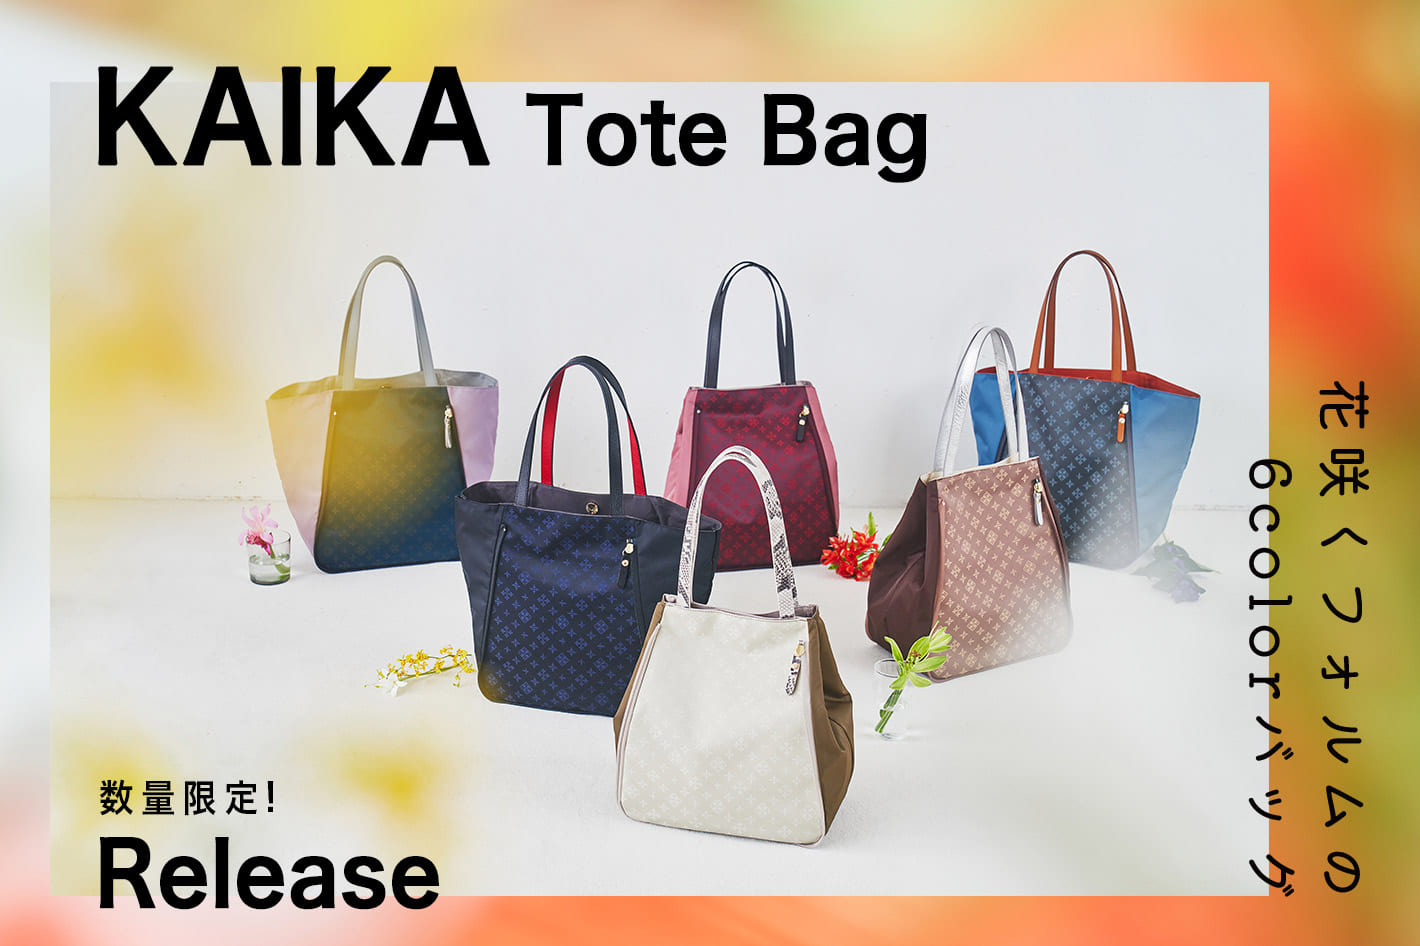 russet ◆New Arrival◆KAIKA Tote Bag -花咲くフォルムの6 colorバッグ-